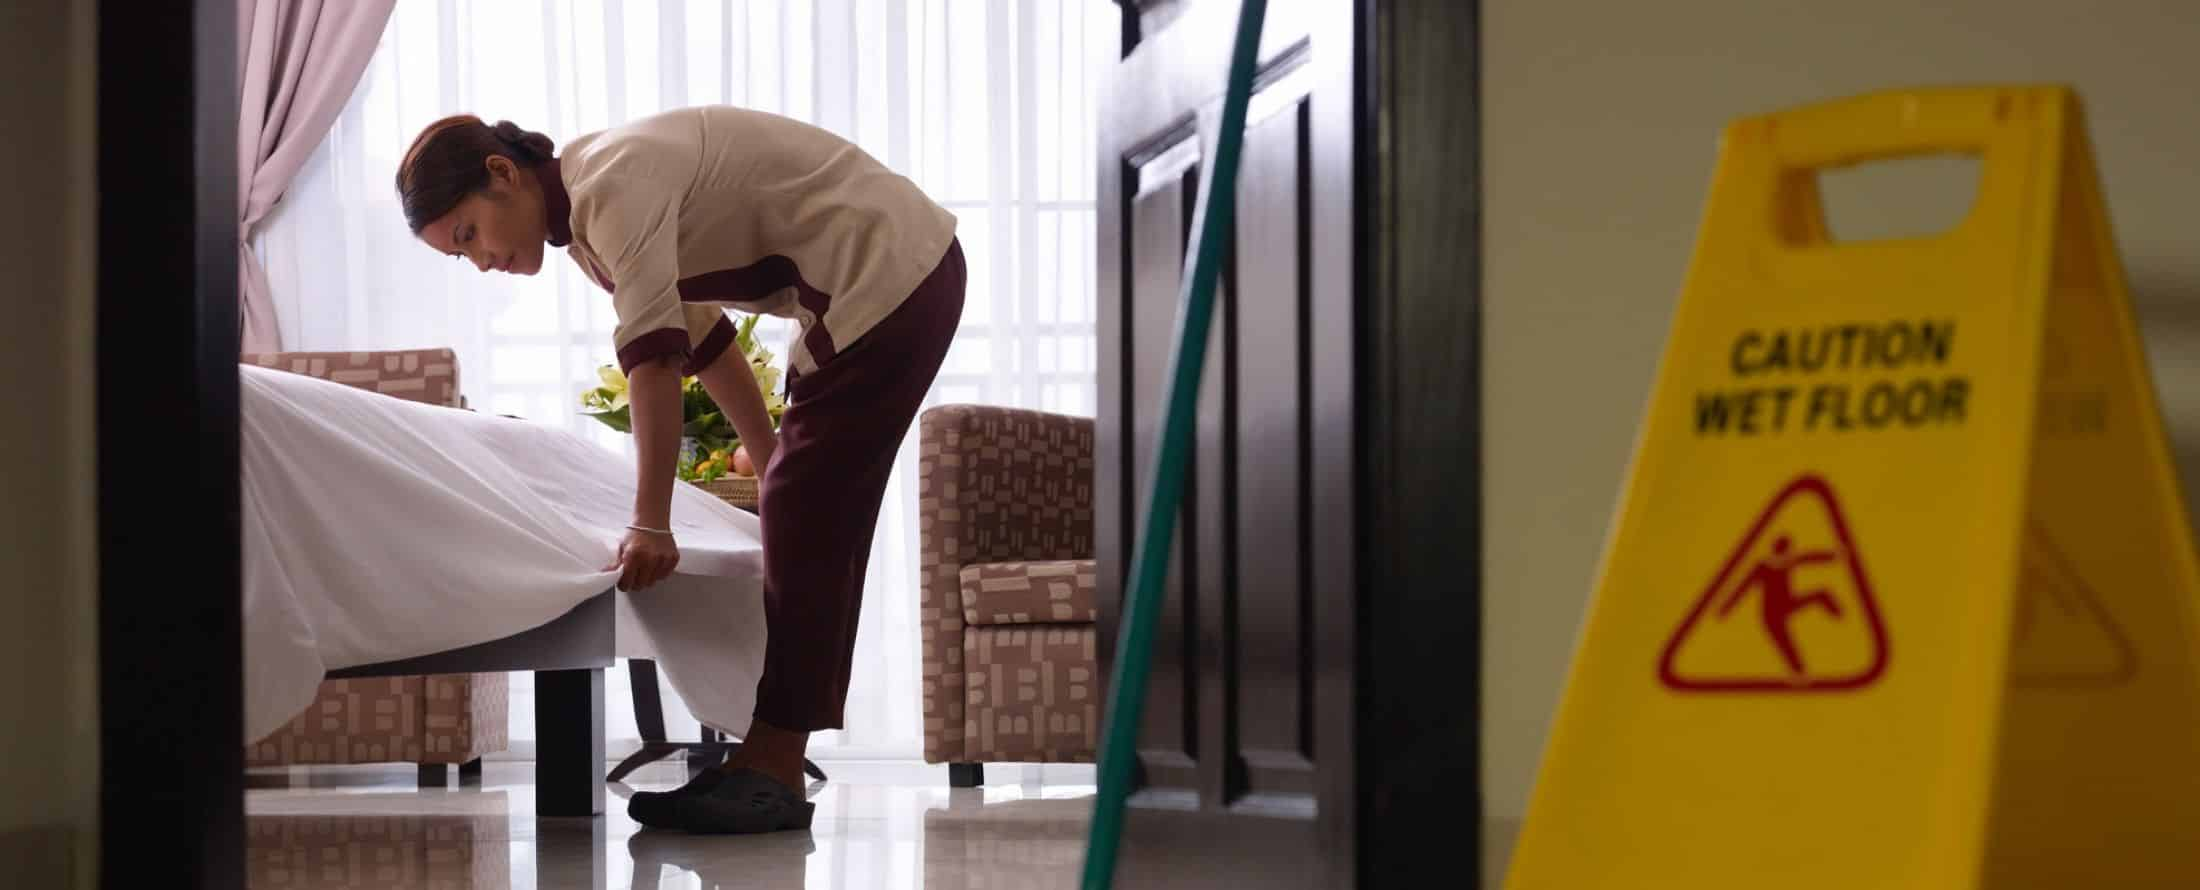 Hotel Security: How to Keep Your Employees Safe - Beekeeper